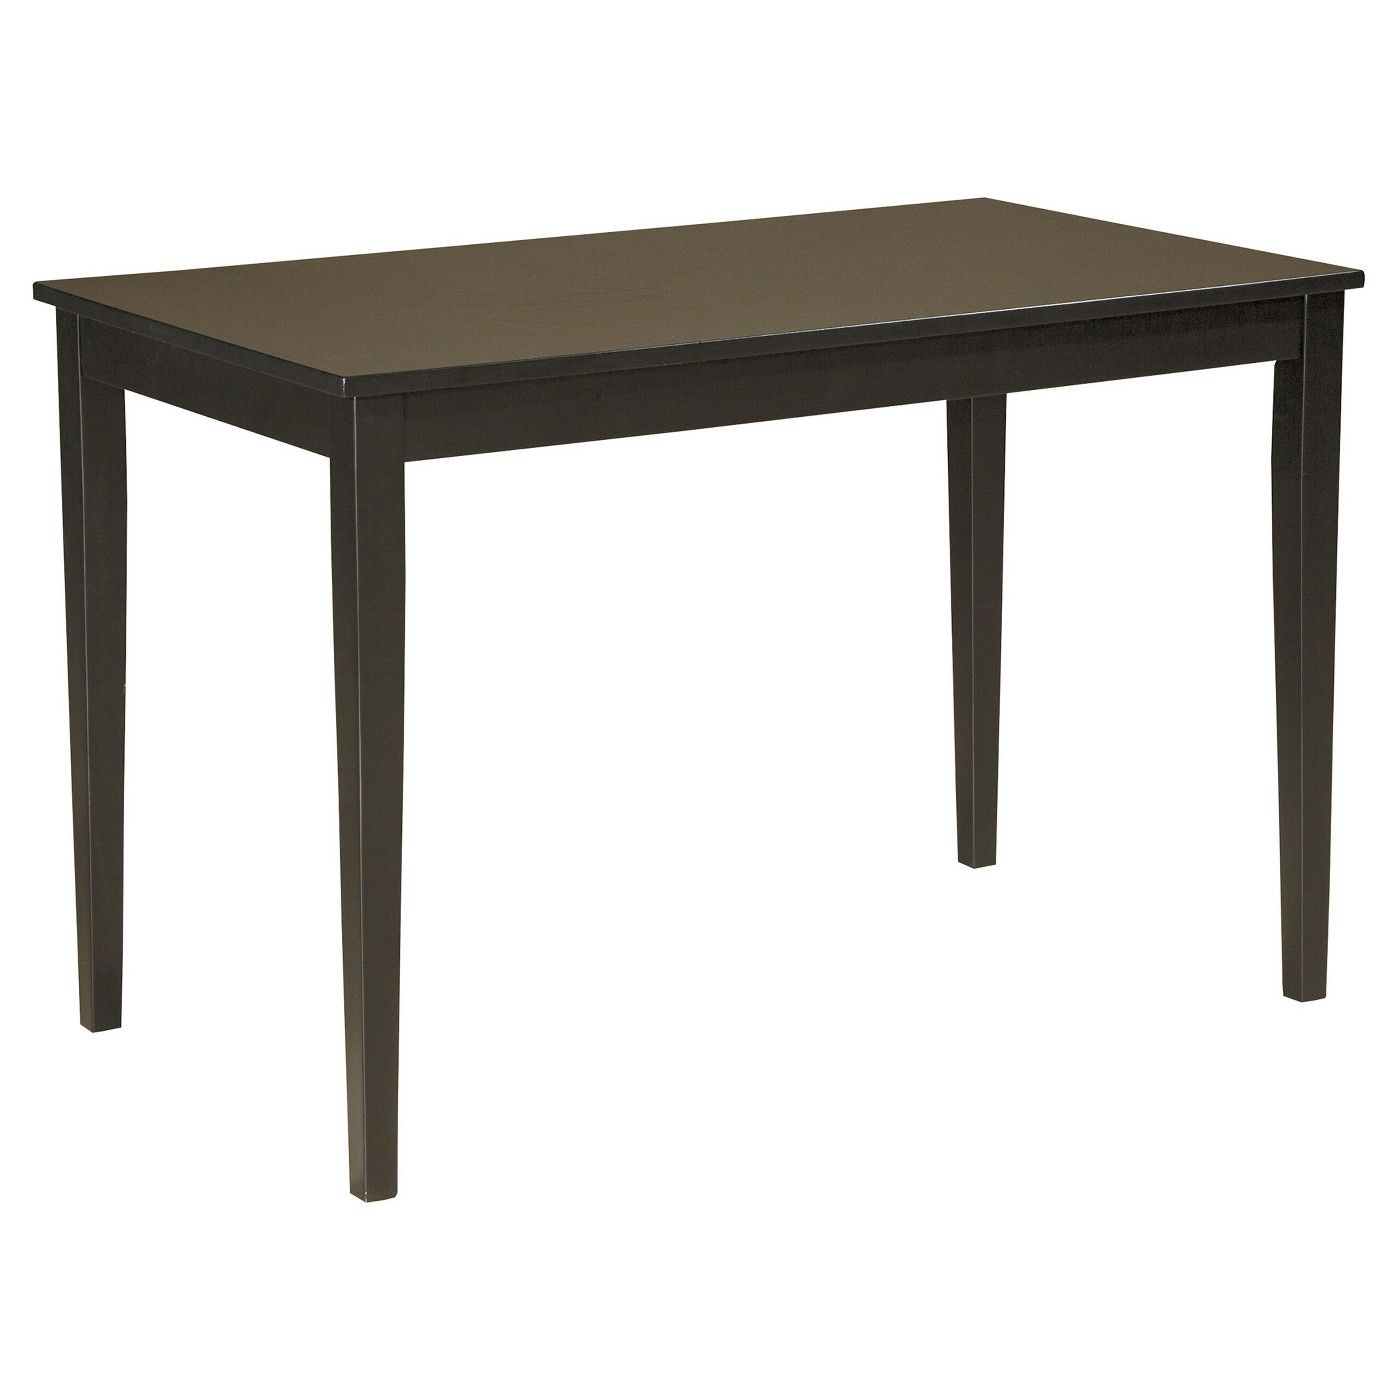 Kimonte rectangular dining room table woodbrown signature design